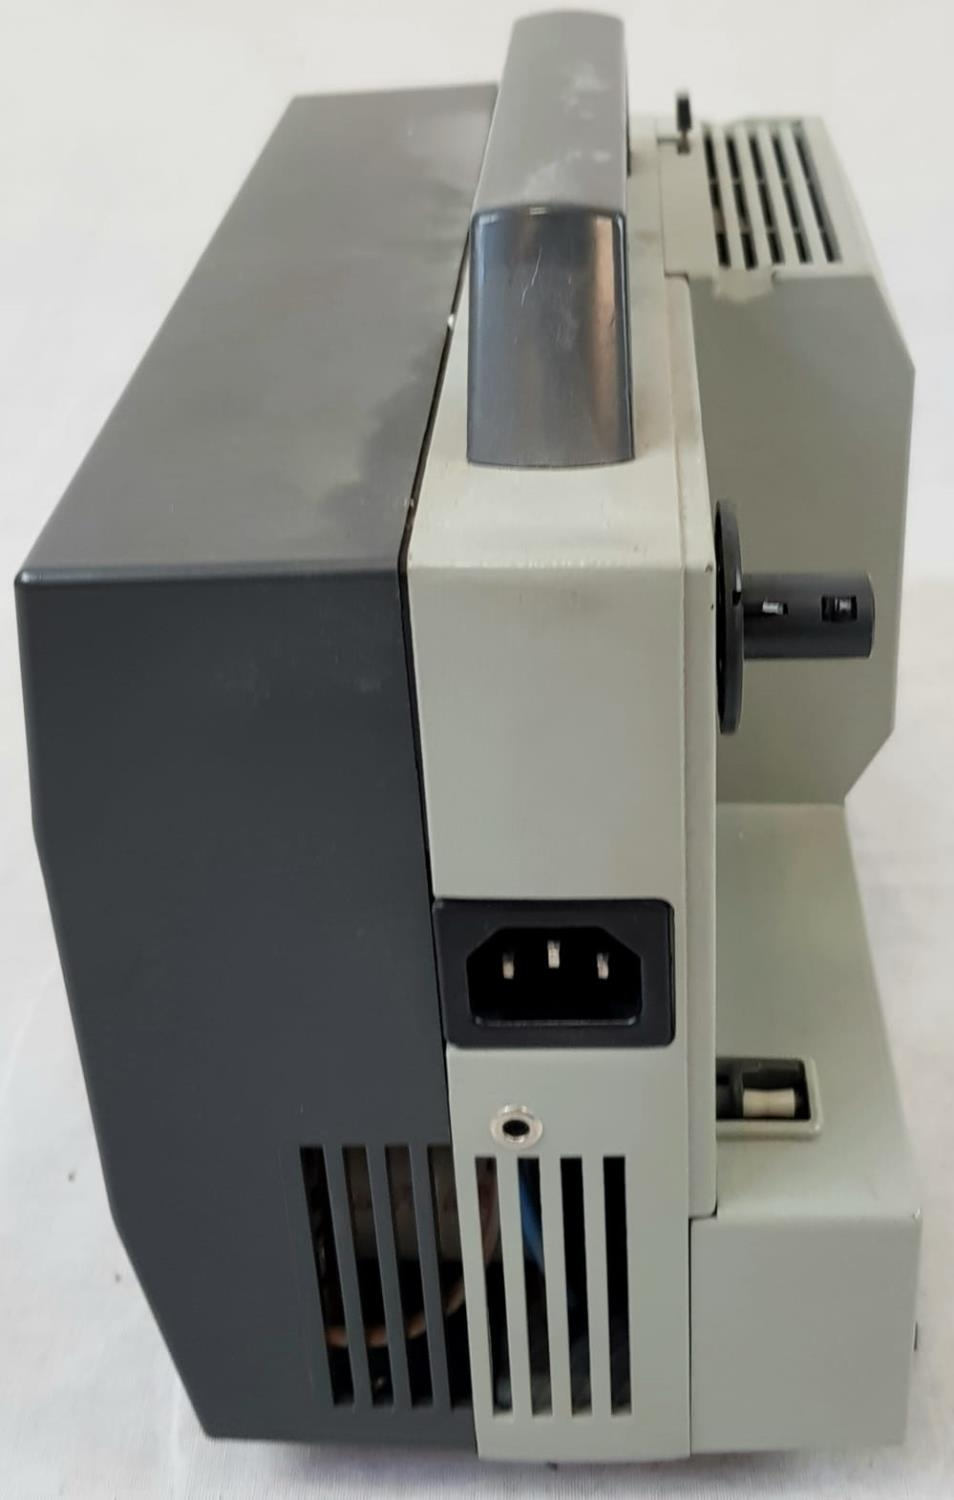 EUMIG 8MM PROJECTOR IN WORKING ORDER PLUS A COLLAPSABLE SCREEN(slight damage but still usable - Image 4 of 6